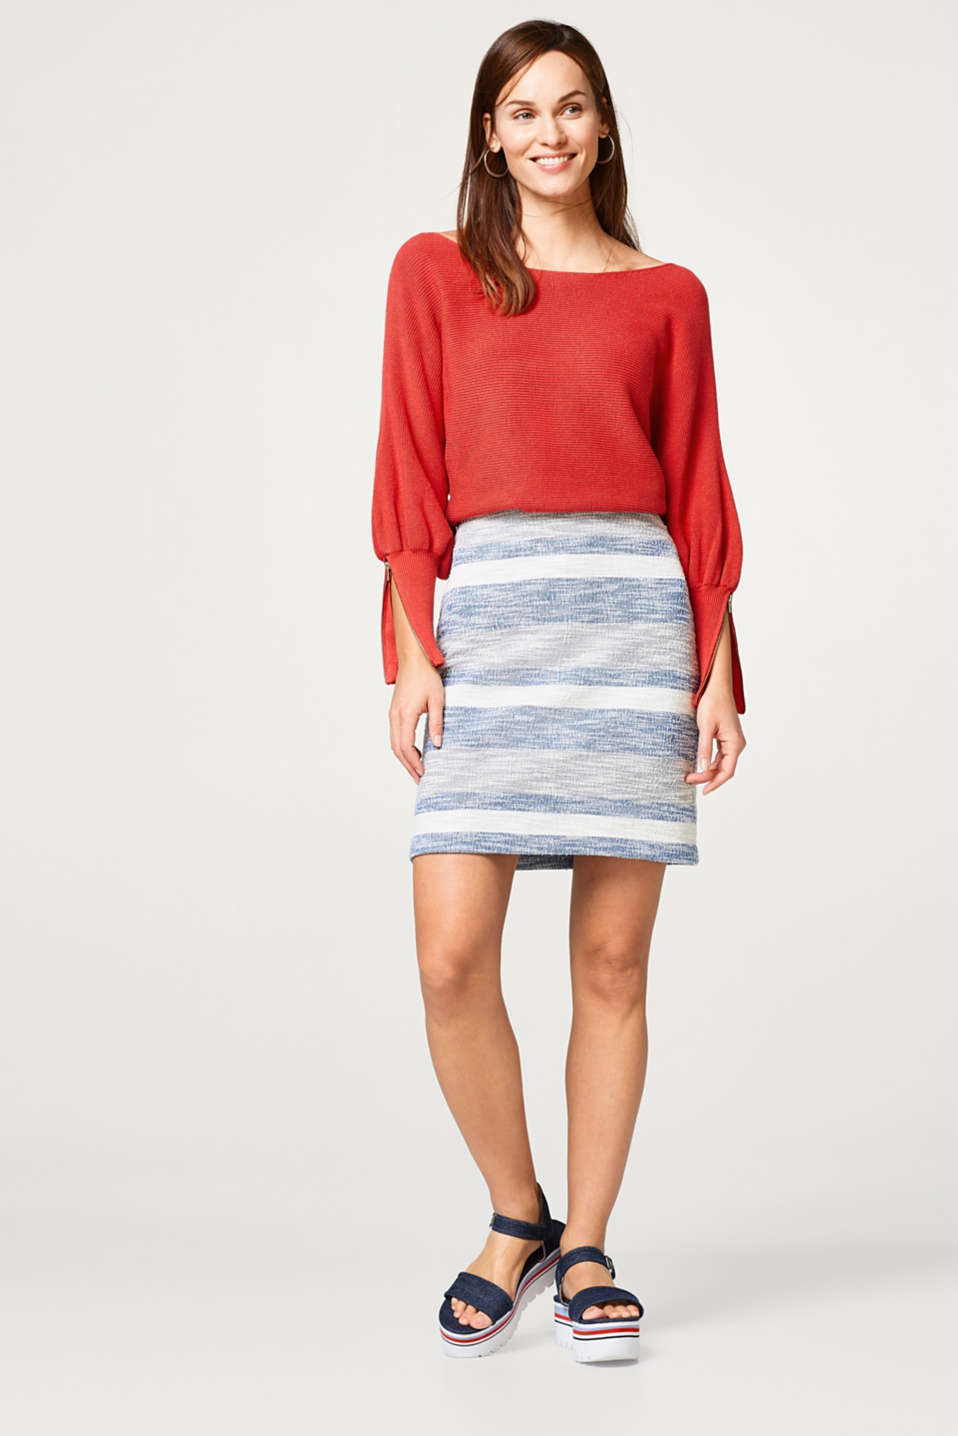 Textured jersey skirt with block stripes